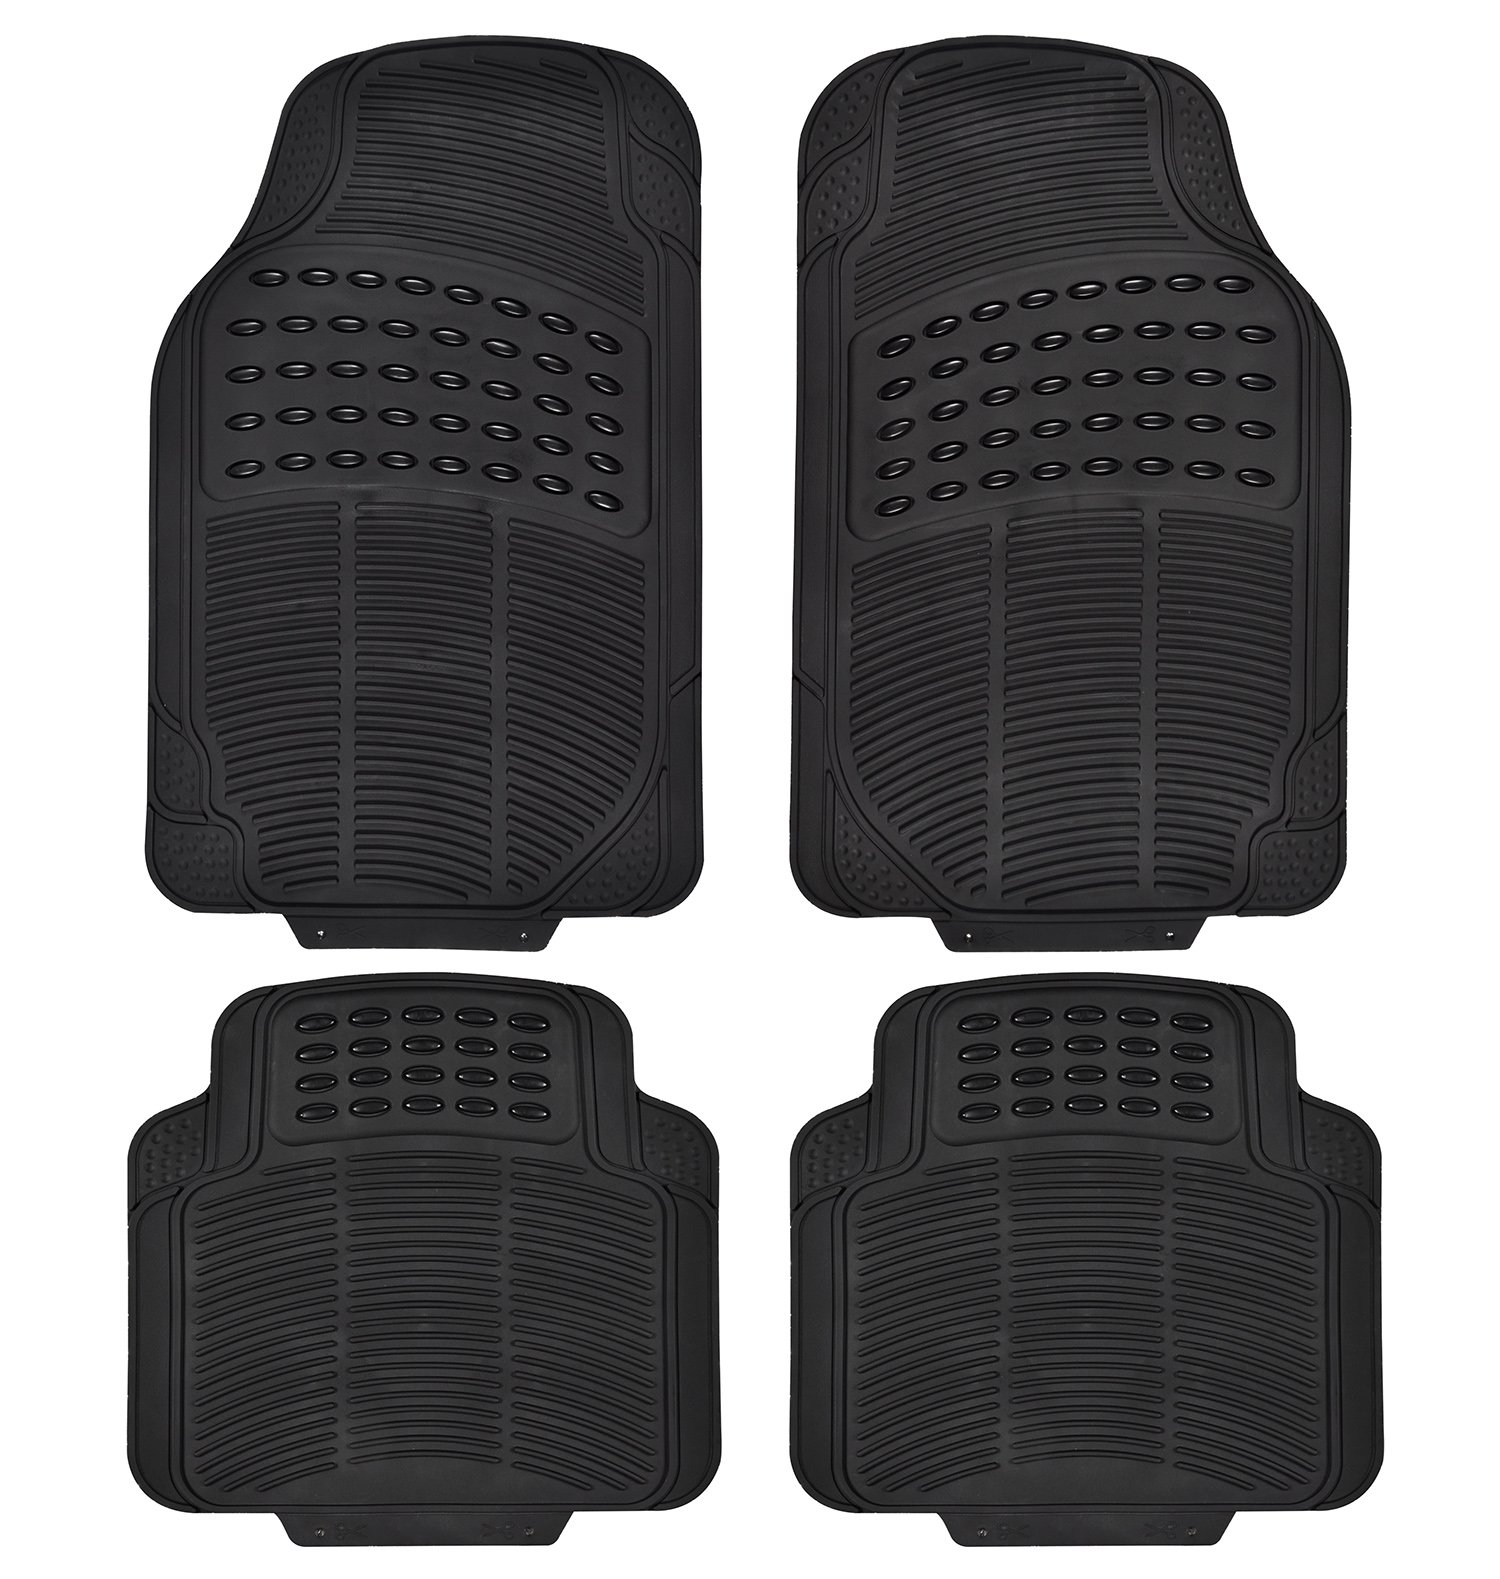 Heavy Duty Rubber Floor Mats for Cars Floor&Rear Rubber Mats All Weather Protection Universal Car Truck Suv Black (Black)